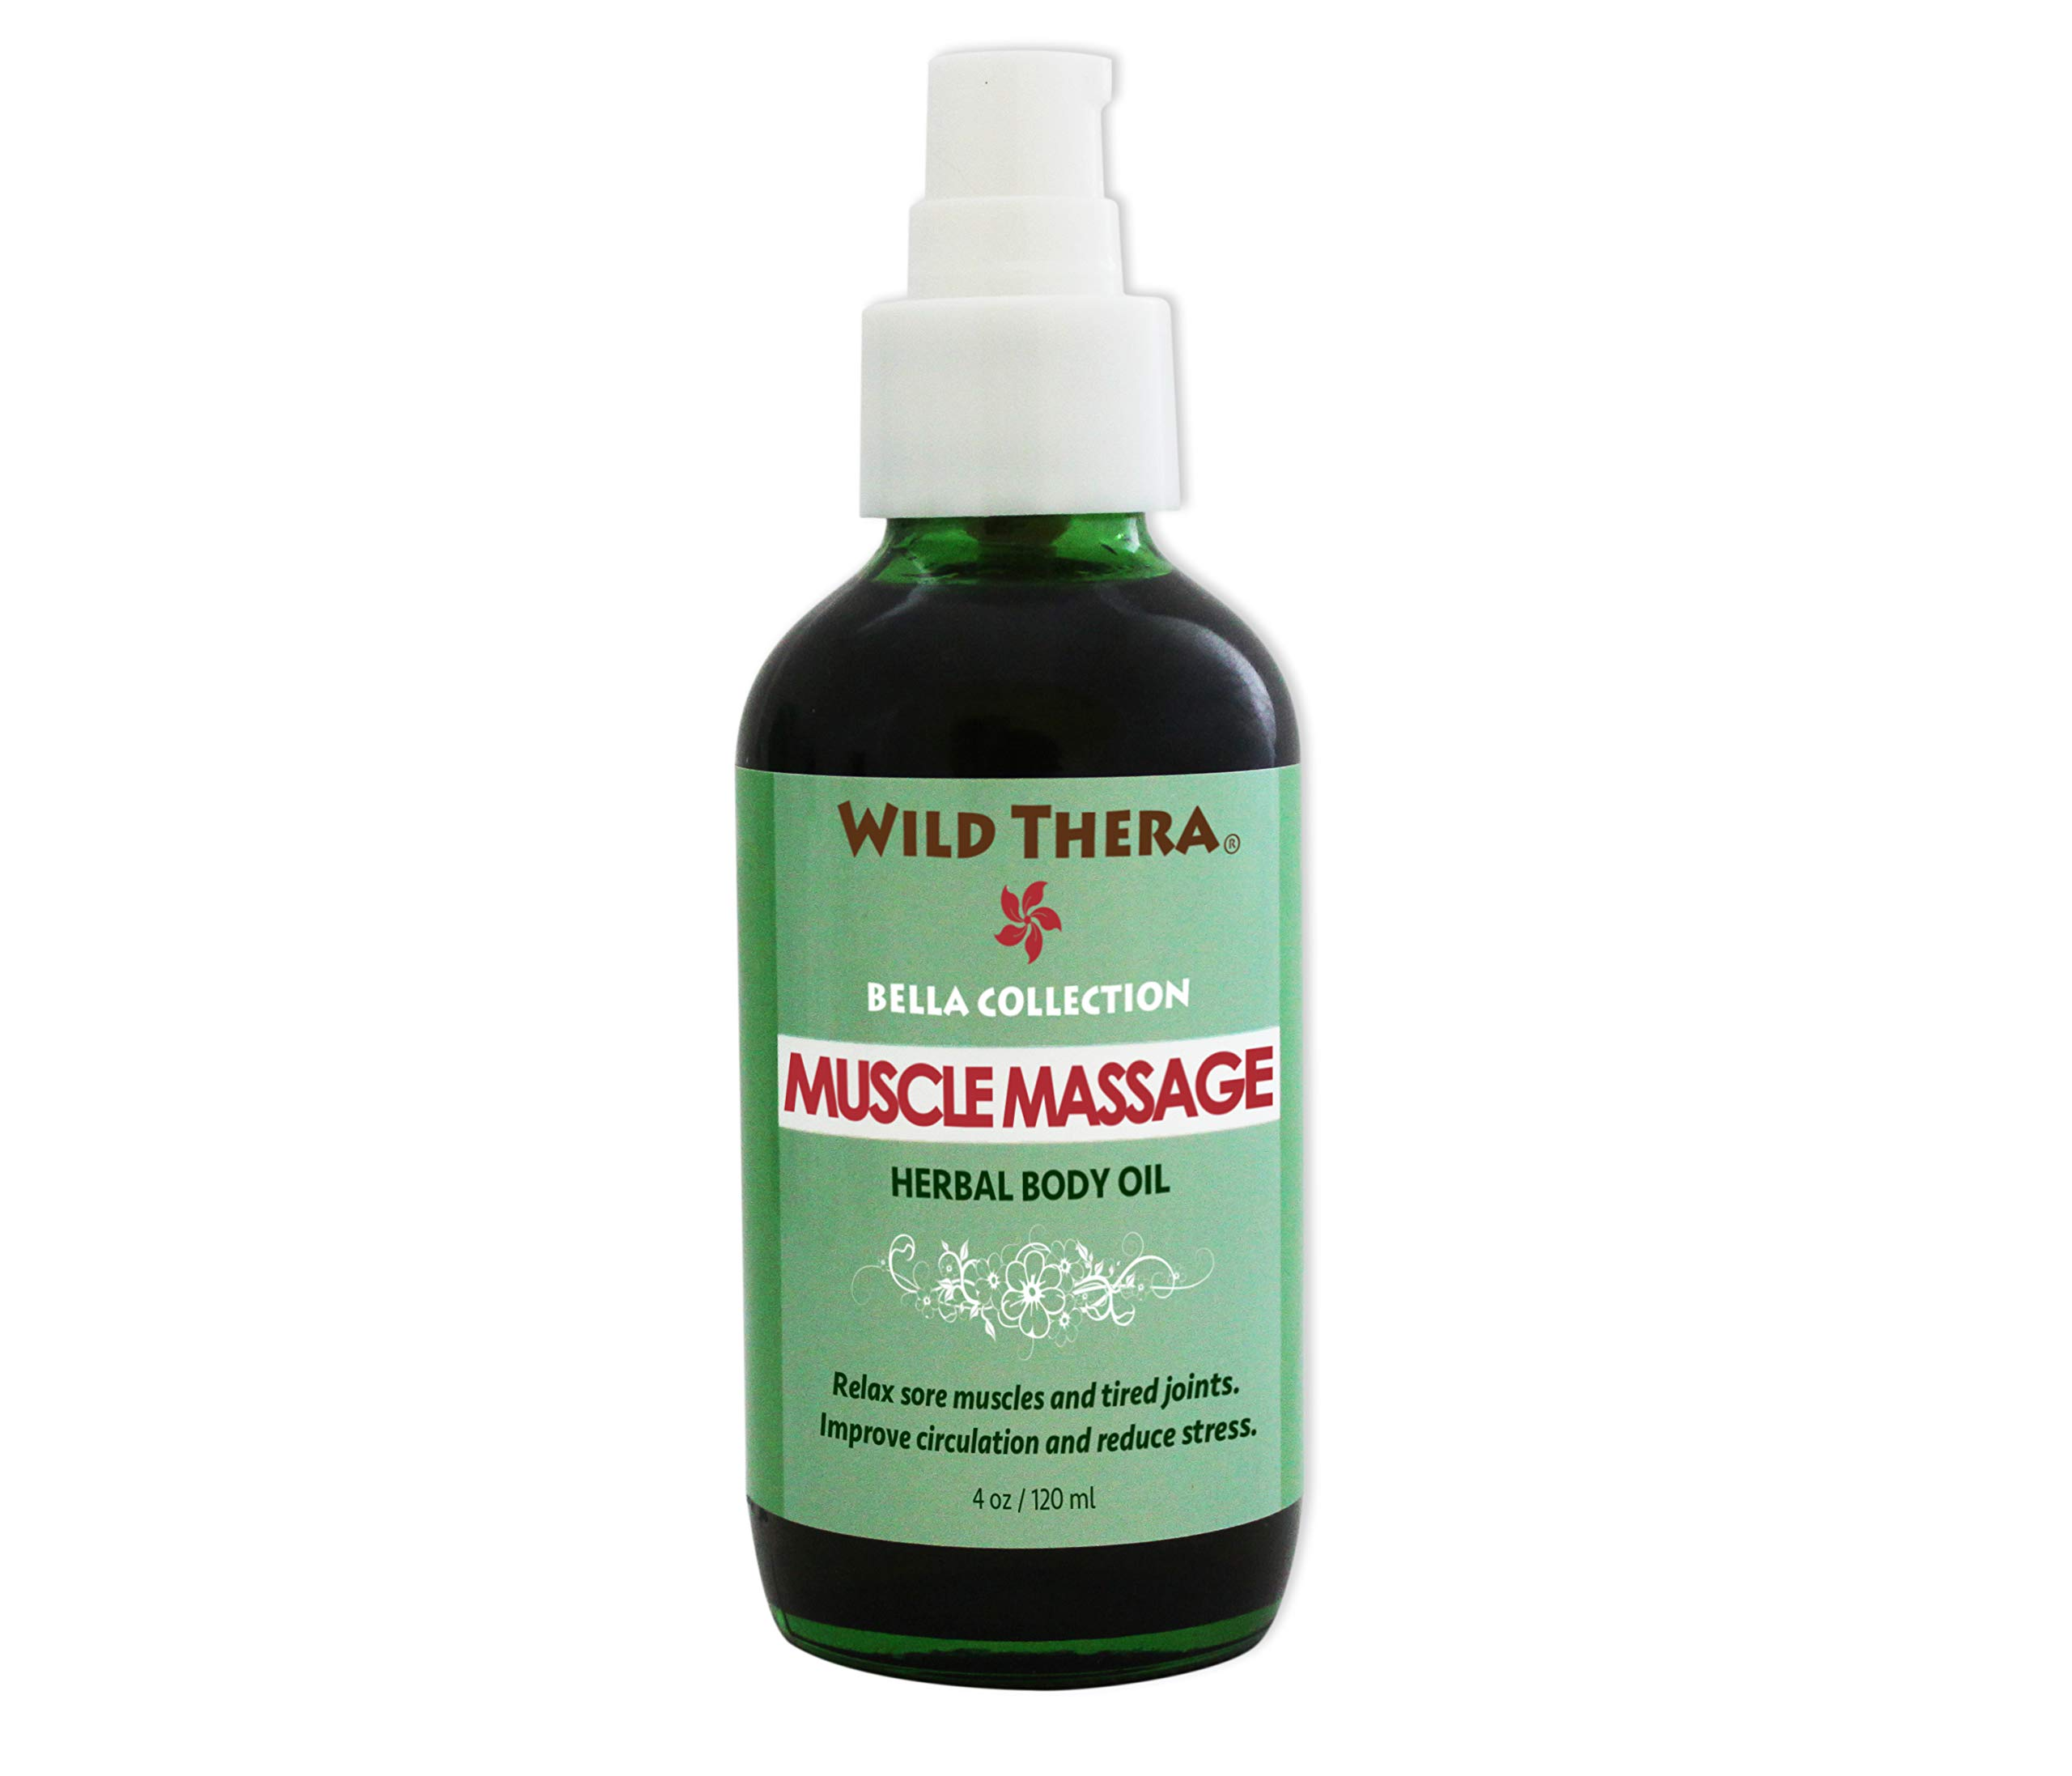 Wild Thera Herbal Muscle Massage Oil. Natural Organic Deep Tissue massage oil with Arnica for sore muscles, joint pain, arthritis, stiffness, injury, athletic recovery and myofascial release.